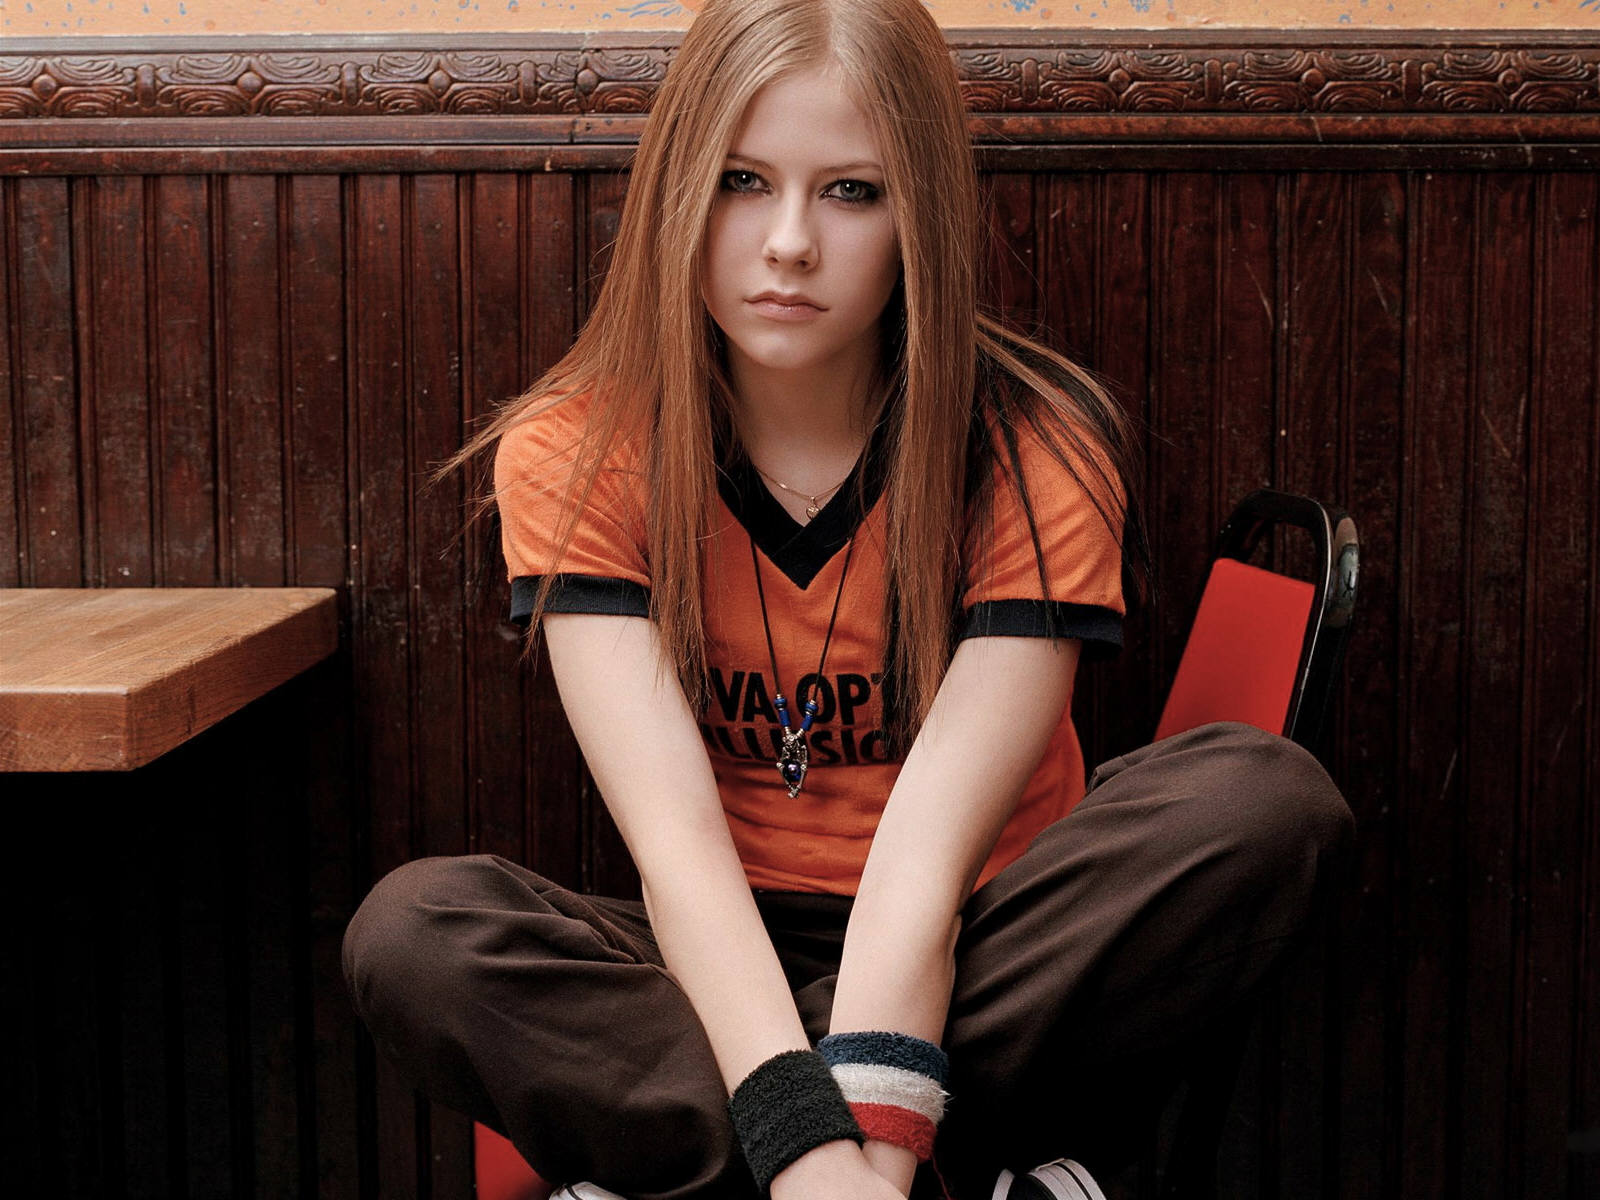 Pop Singer Avril Lavigne (5) 218.59 Kb